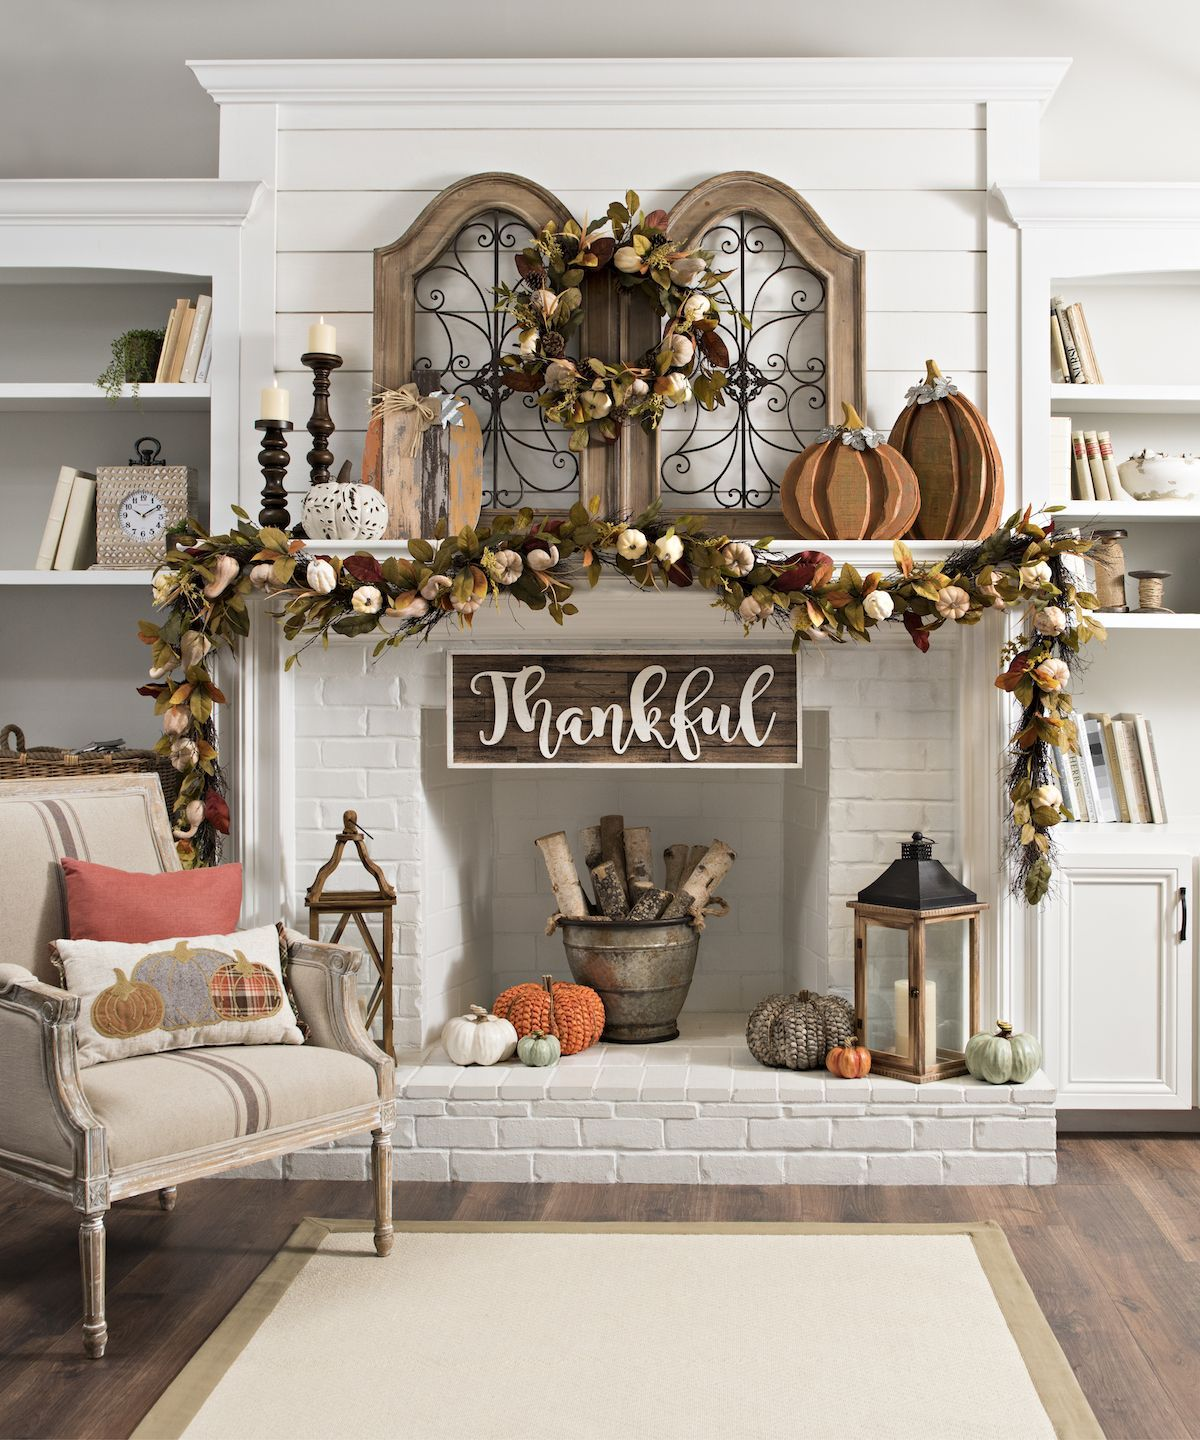 Fall Fireplace Mantel Decorating Ideas: Pin About Fall Mantel Decorations And Fall Living Room On